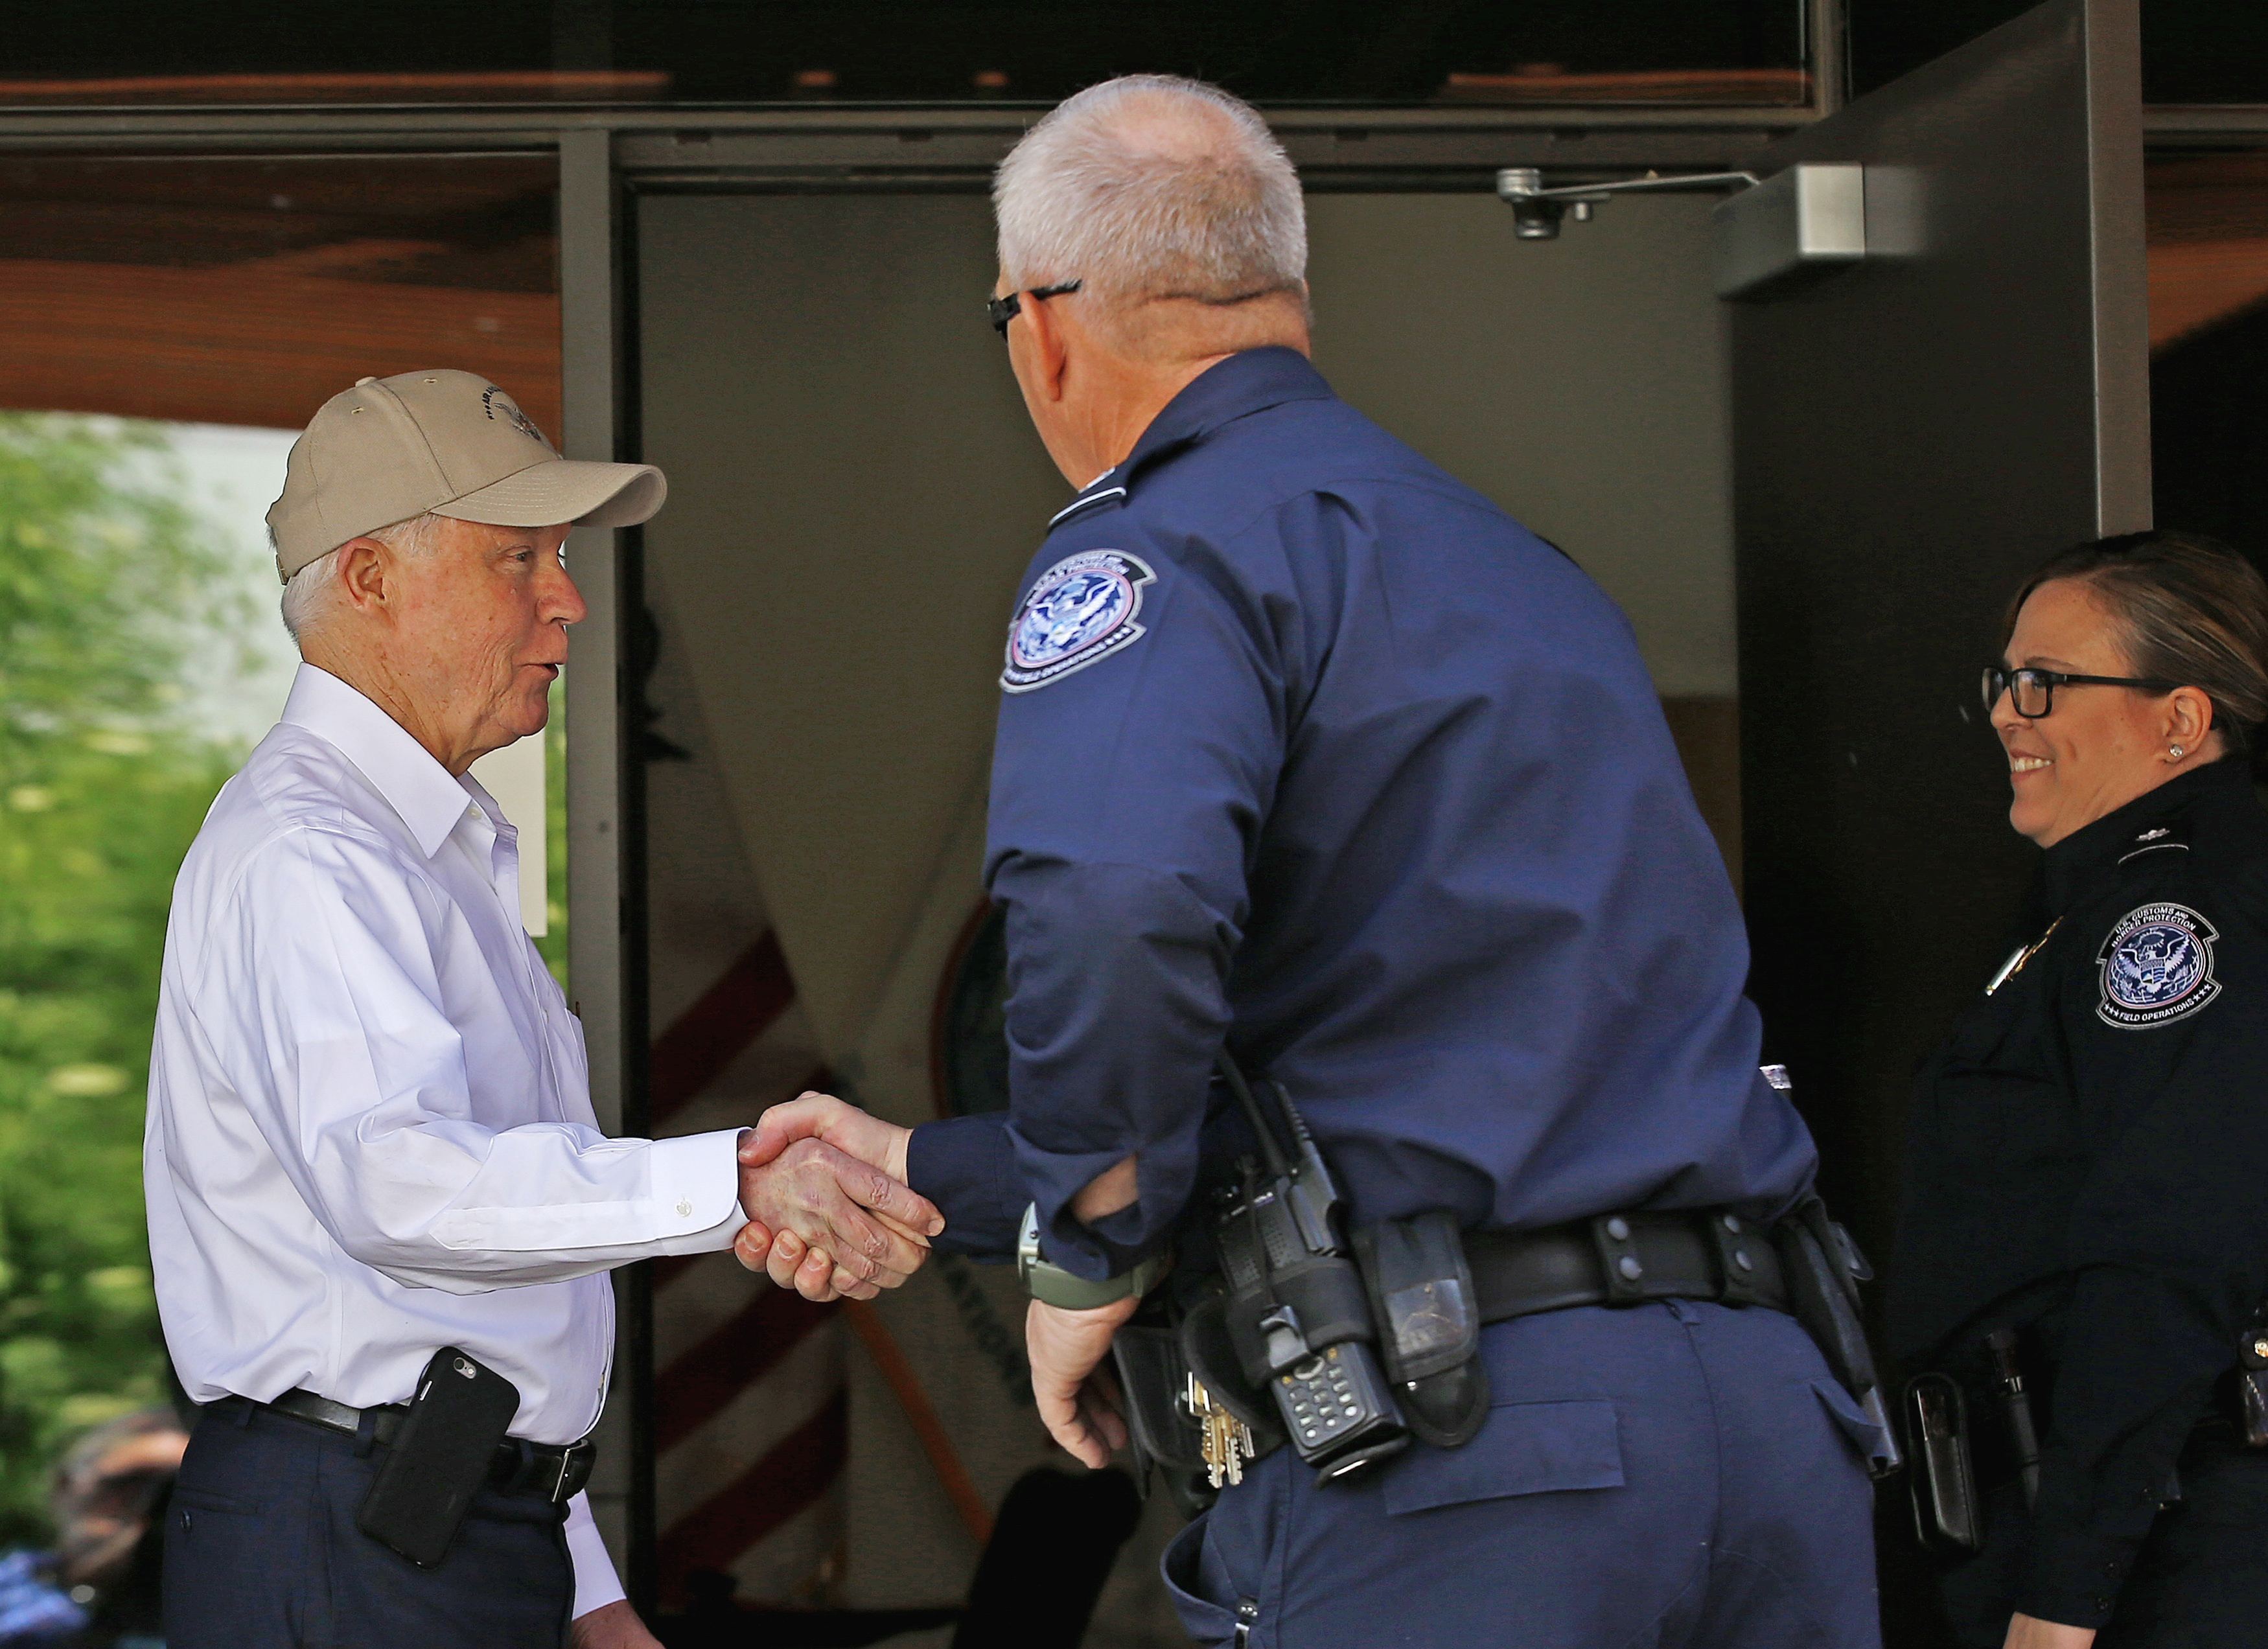 Attorney General Jeff Sessions, left, shakes hands with U.S. Customs and Border Protection officers as he tours the U.S.-Mexico border on April 11, 2017, in Nogales, Ariz.